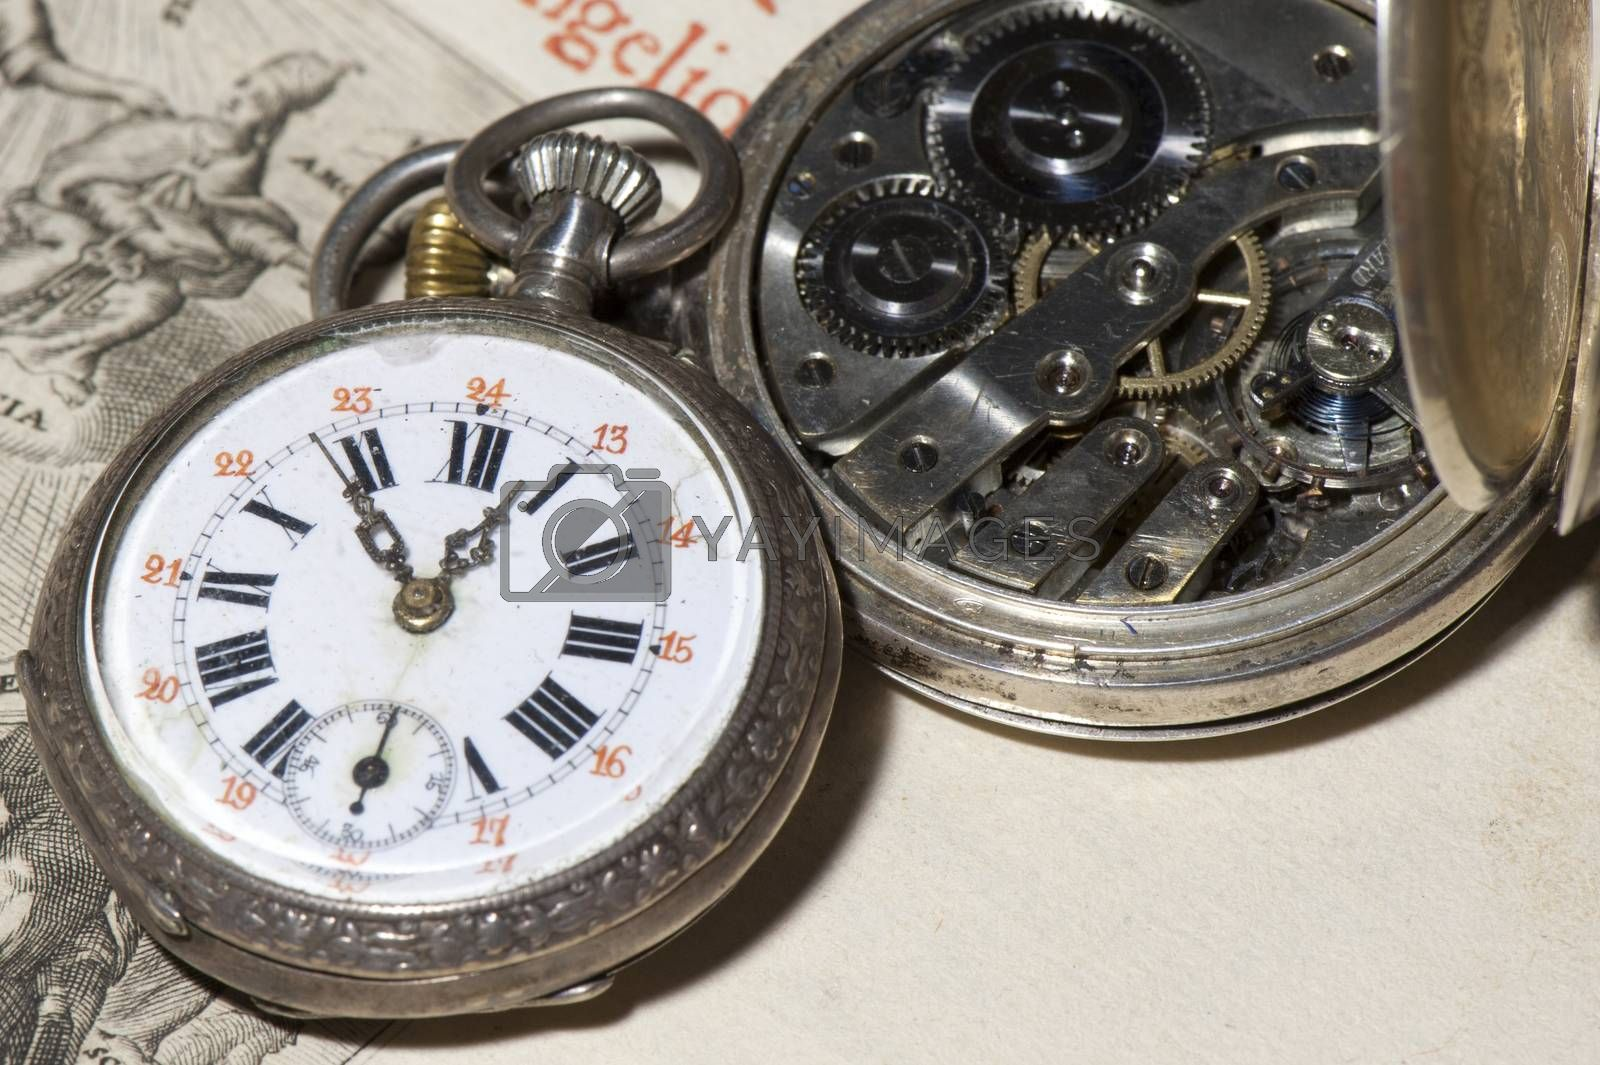 antique pocket watch on ancient Bible into Latin